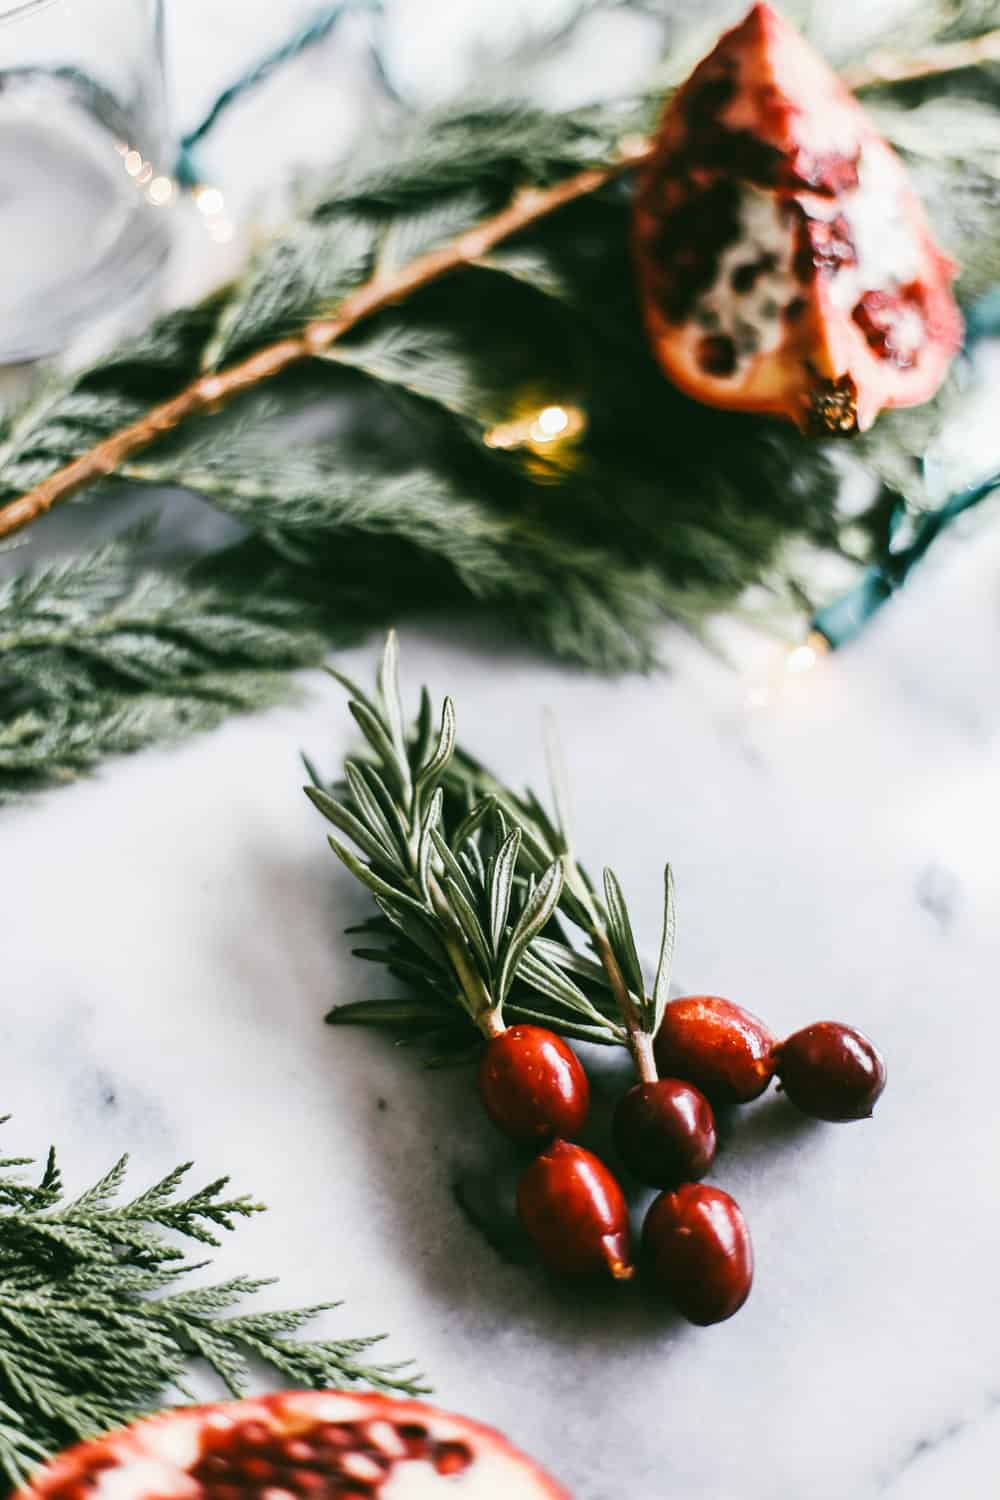 Three rosemary sprigs with cranberries.